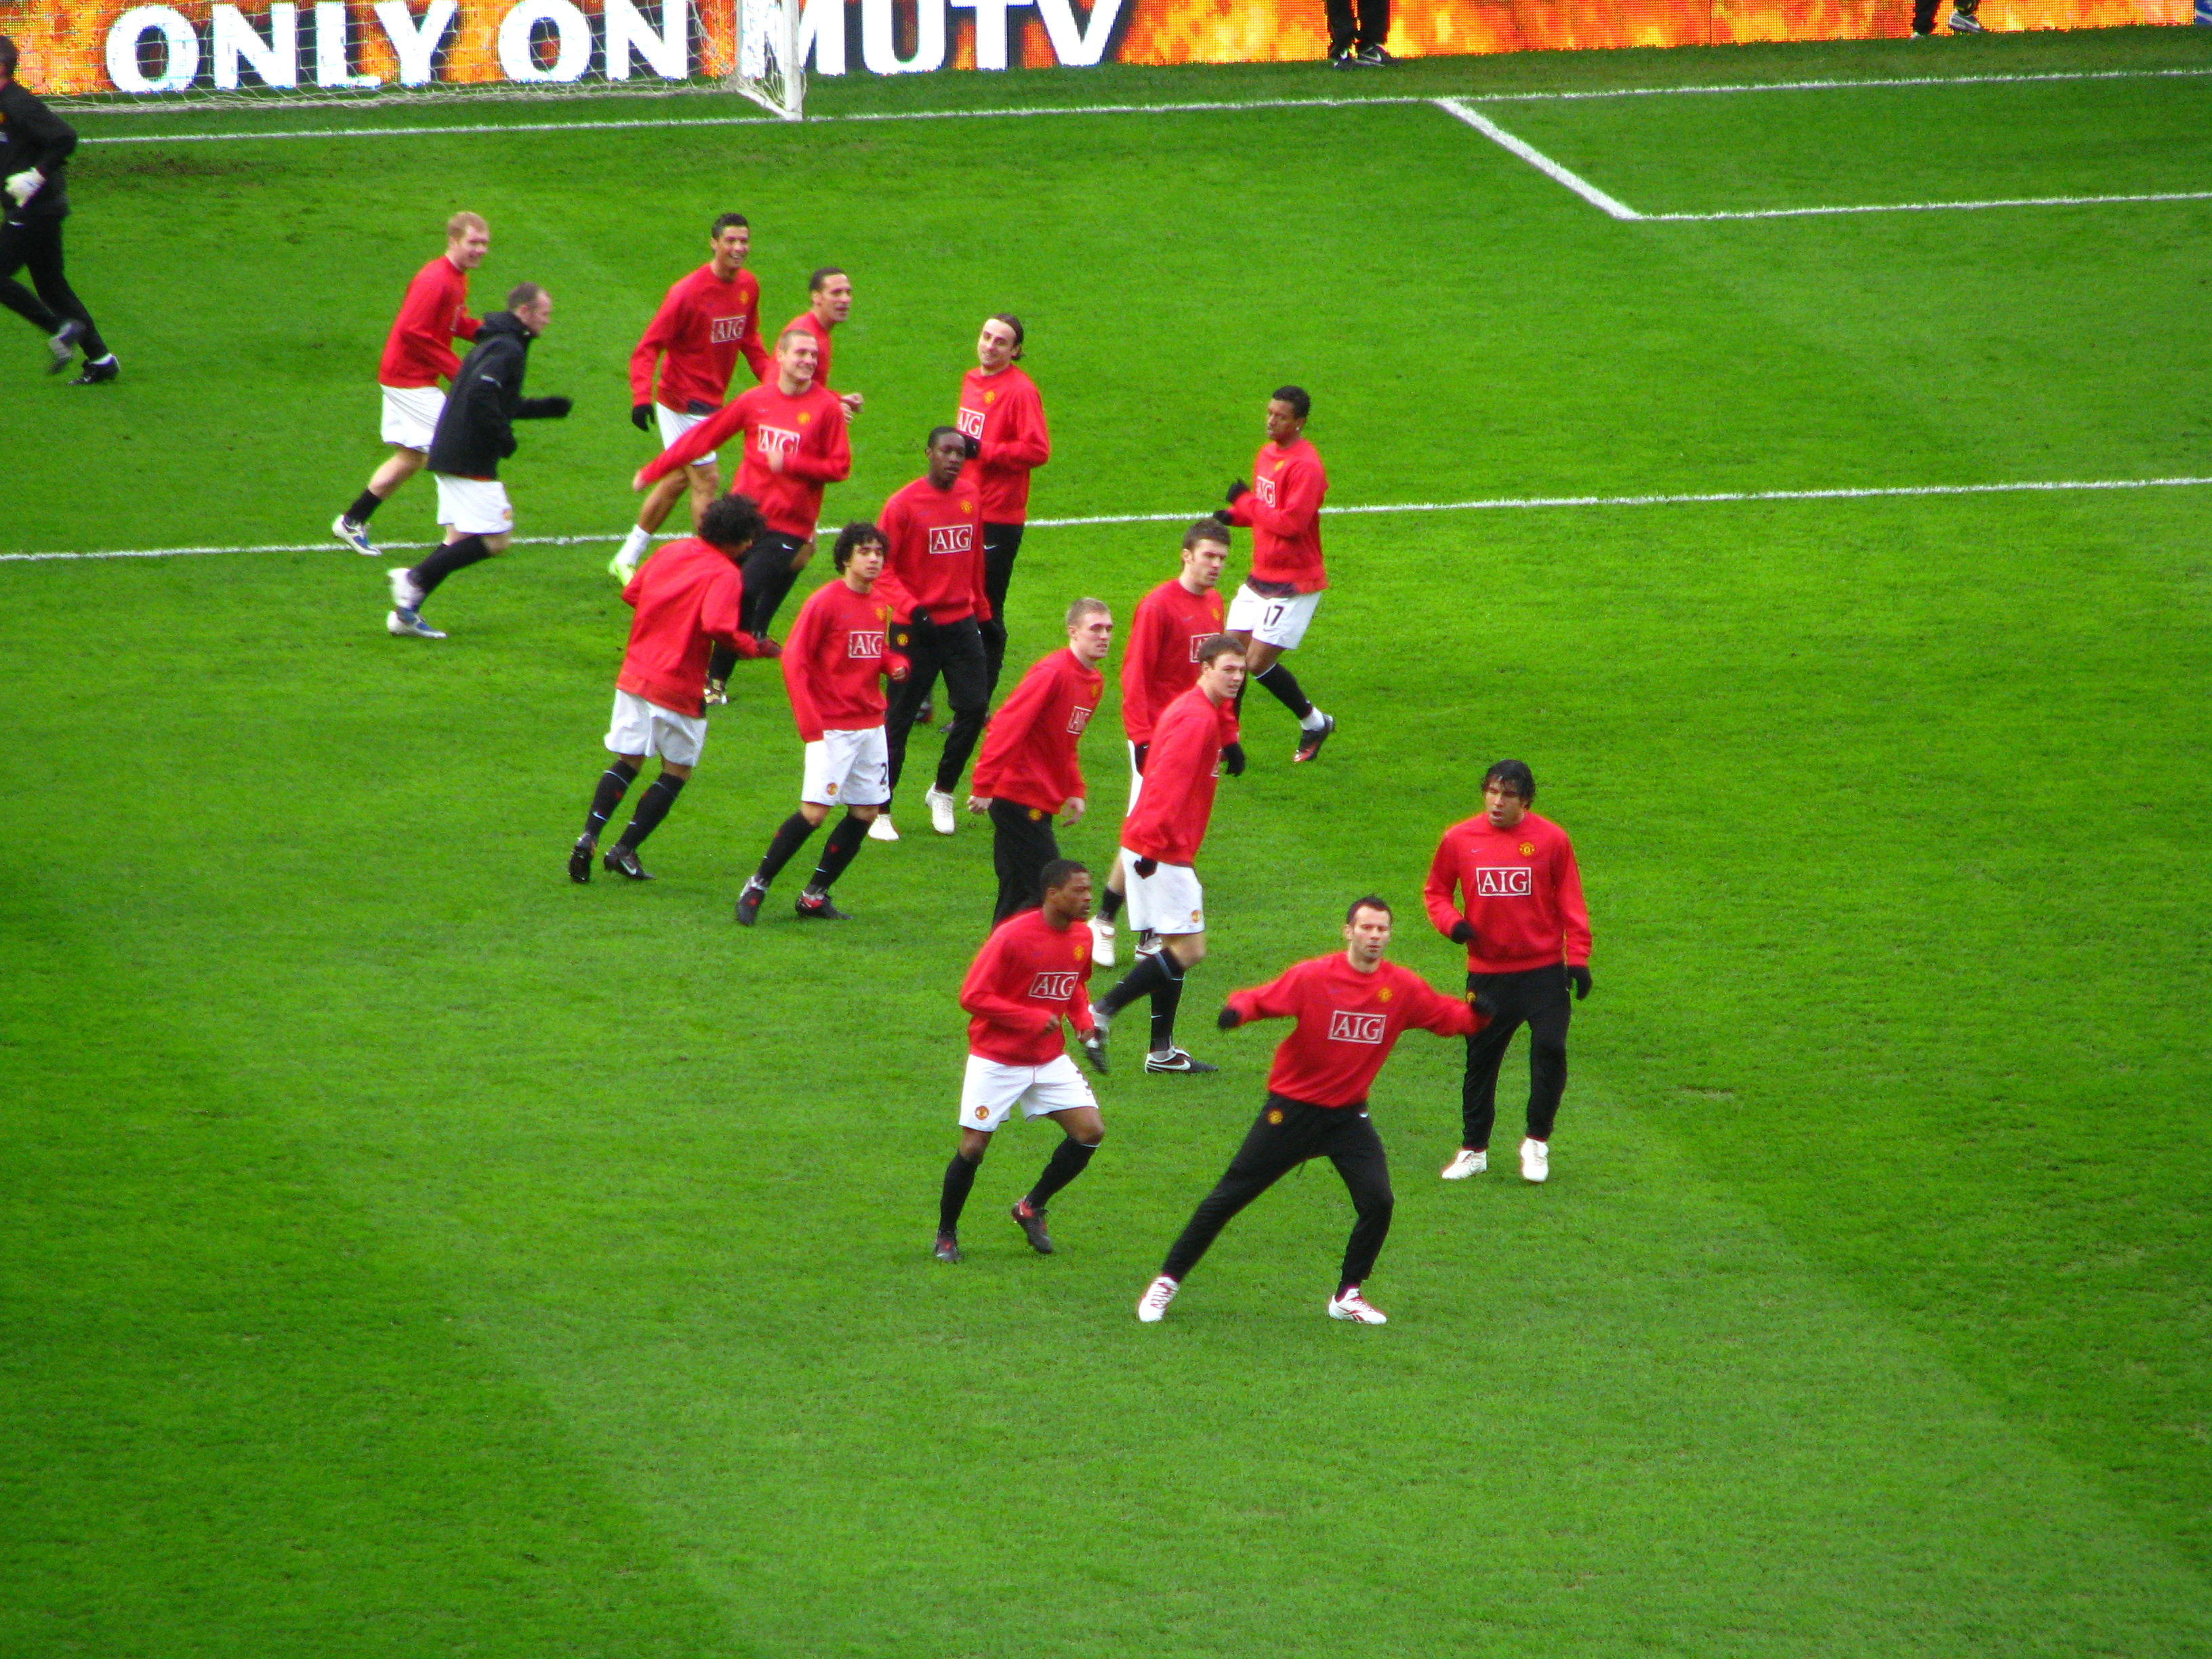 fc manchester united Photo